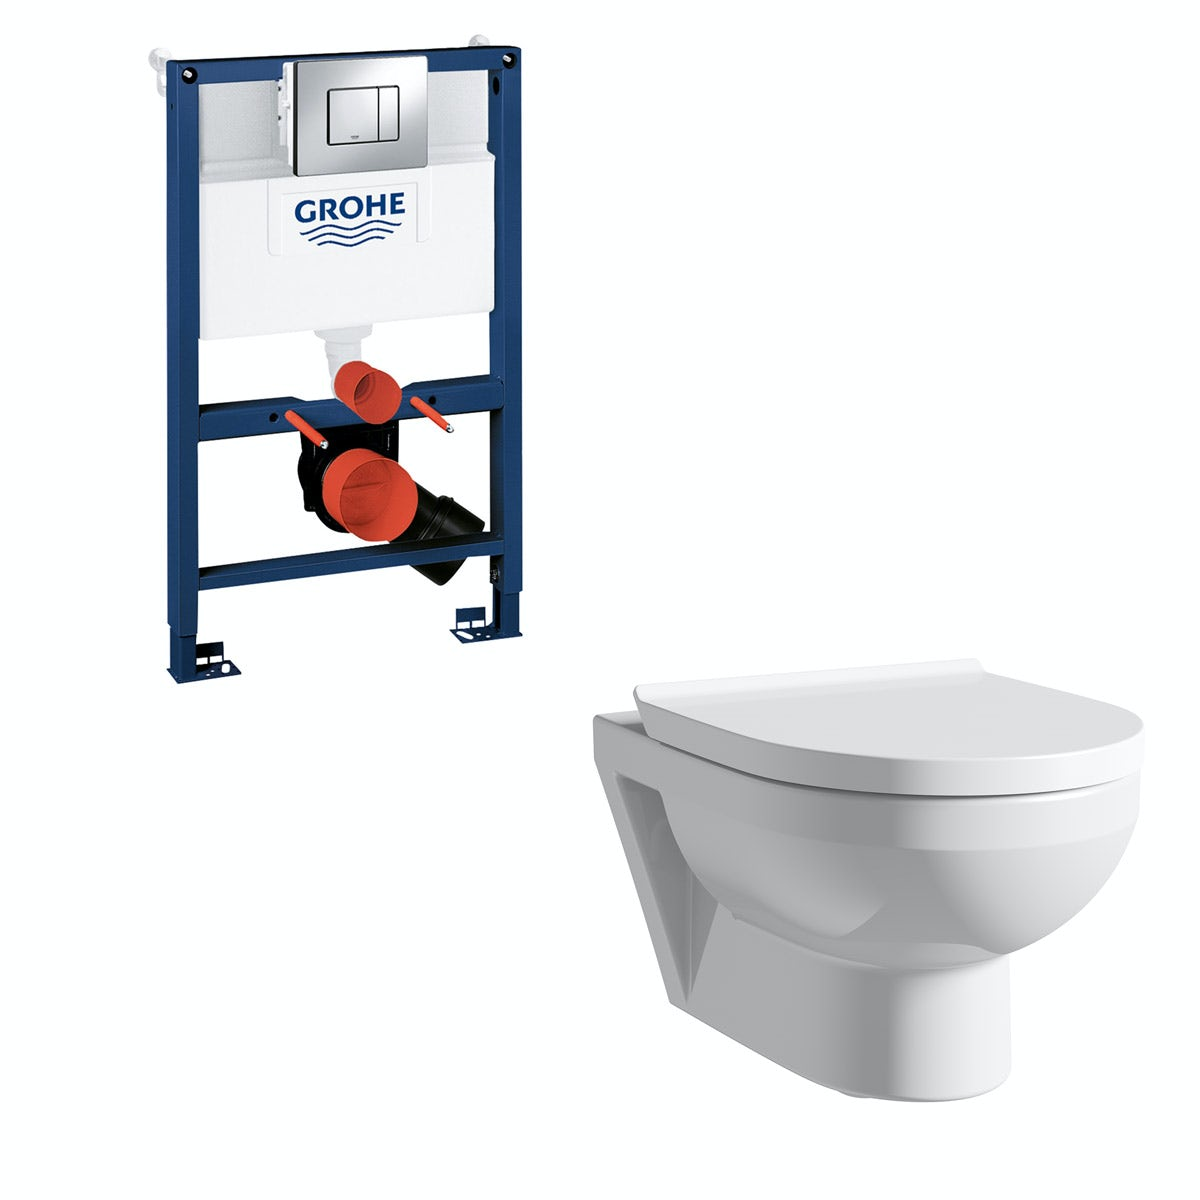 Duravit Durastyle Basic rimless wall hung toilet with soft close seat, Grohe Rapid SL frame and Skate Cosmopolitan push plate